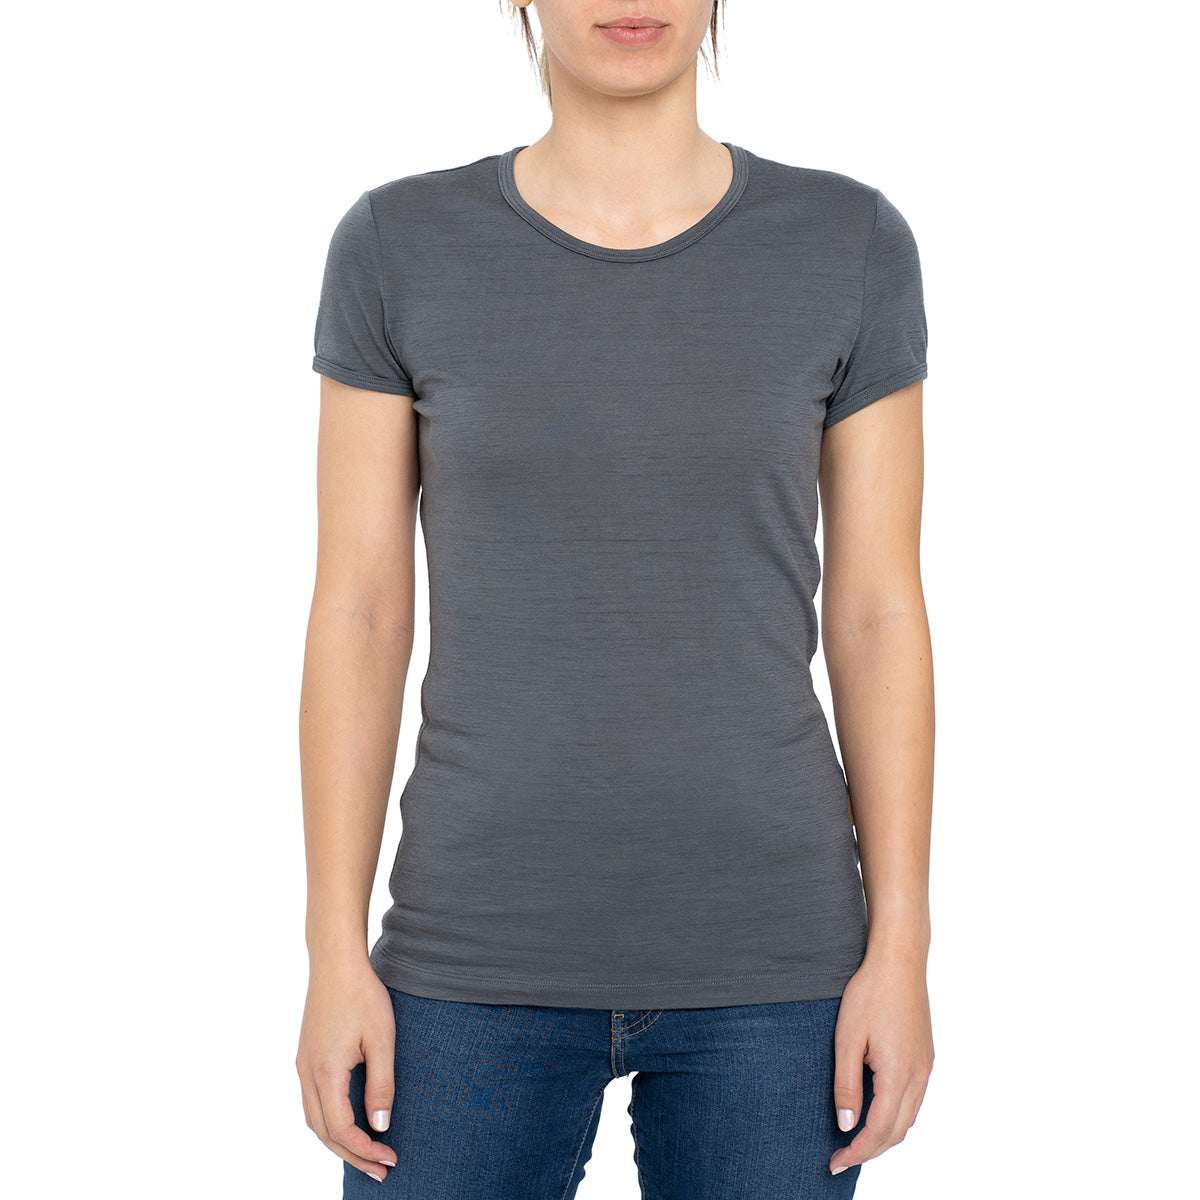 menique Women's Merino 160 Short Sleeve Crew Perfect Grey Color